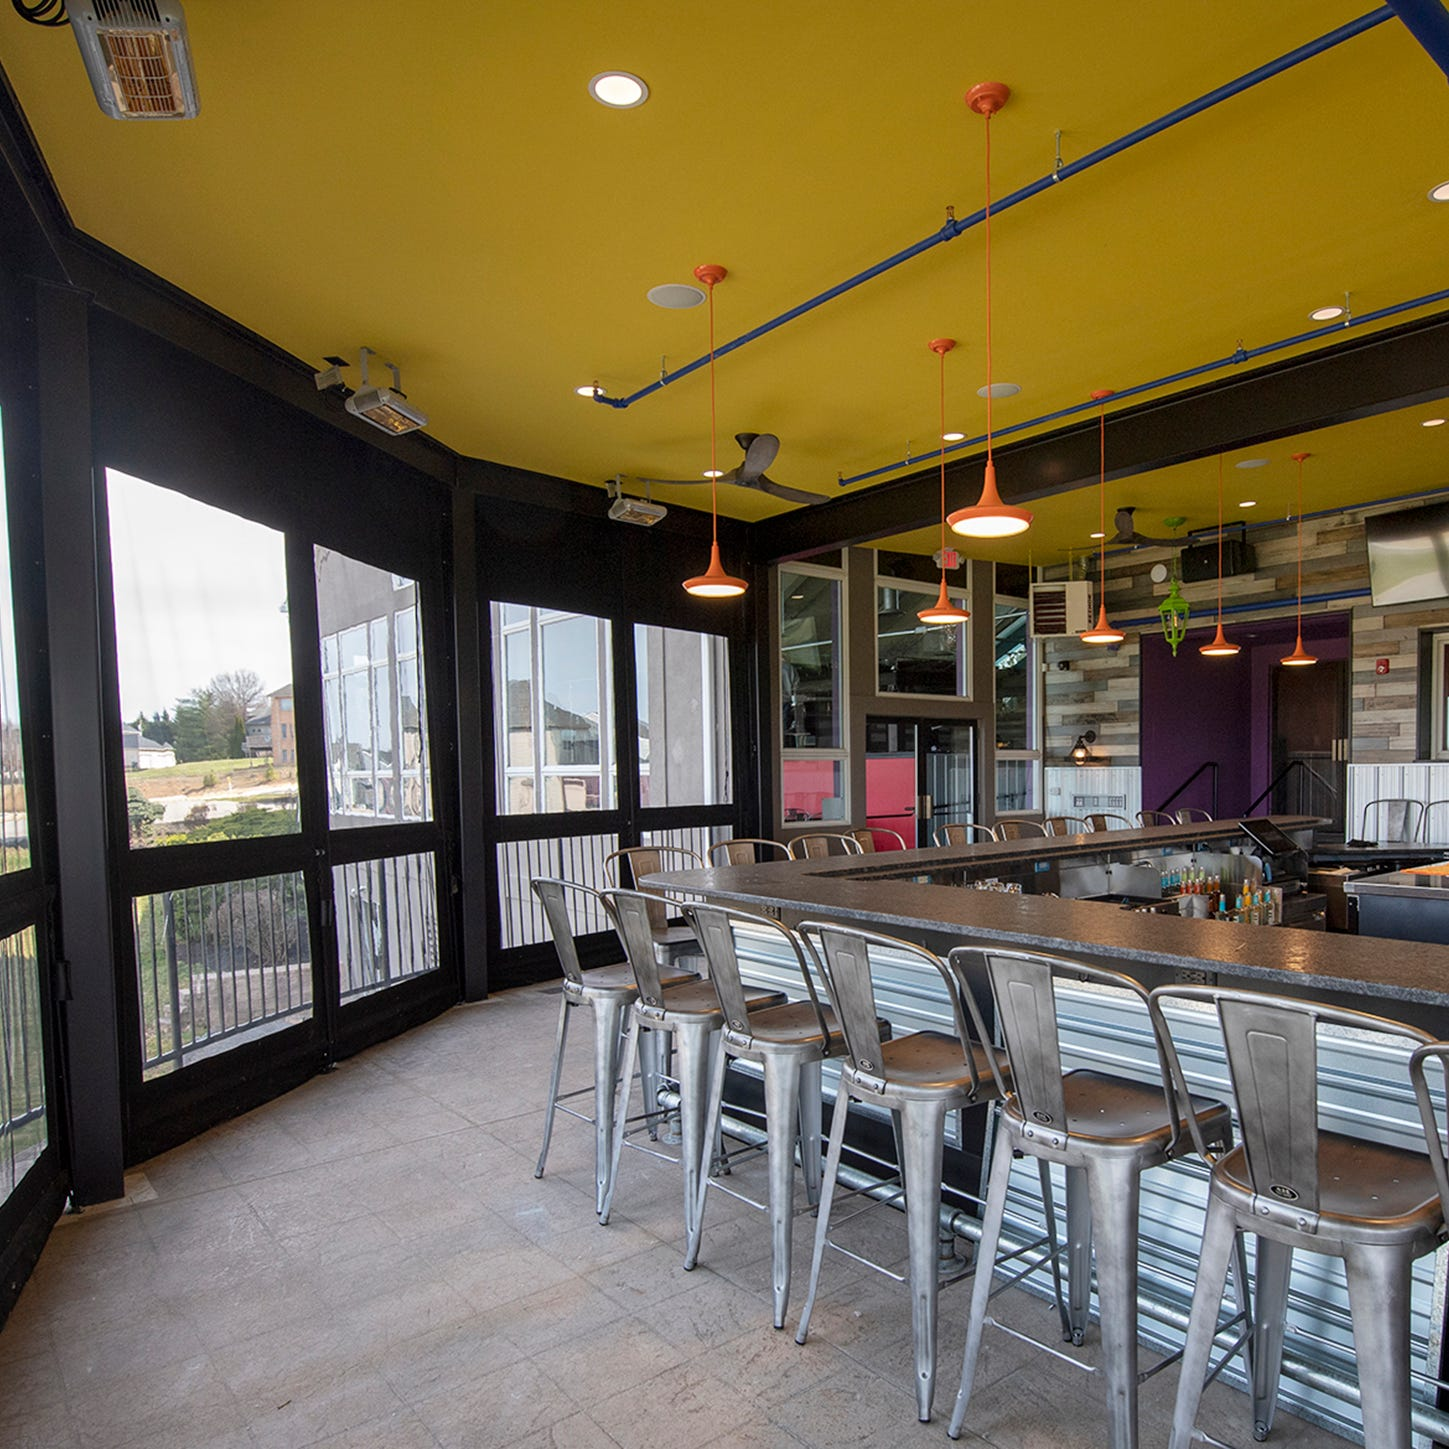 Opening soon: White Rose at Bridgewater will bring downtown flavor to York Township